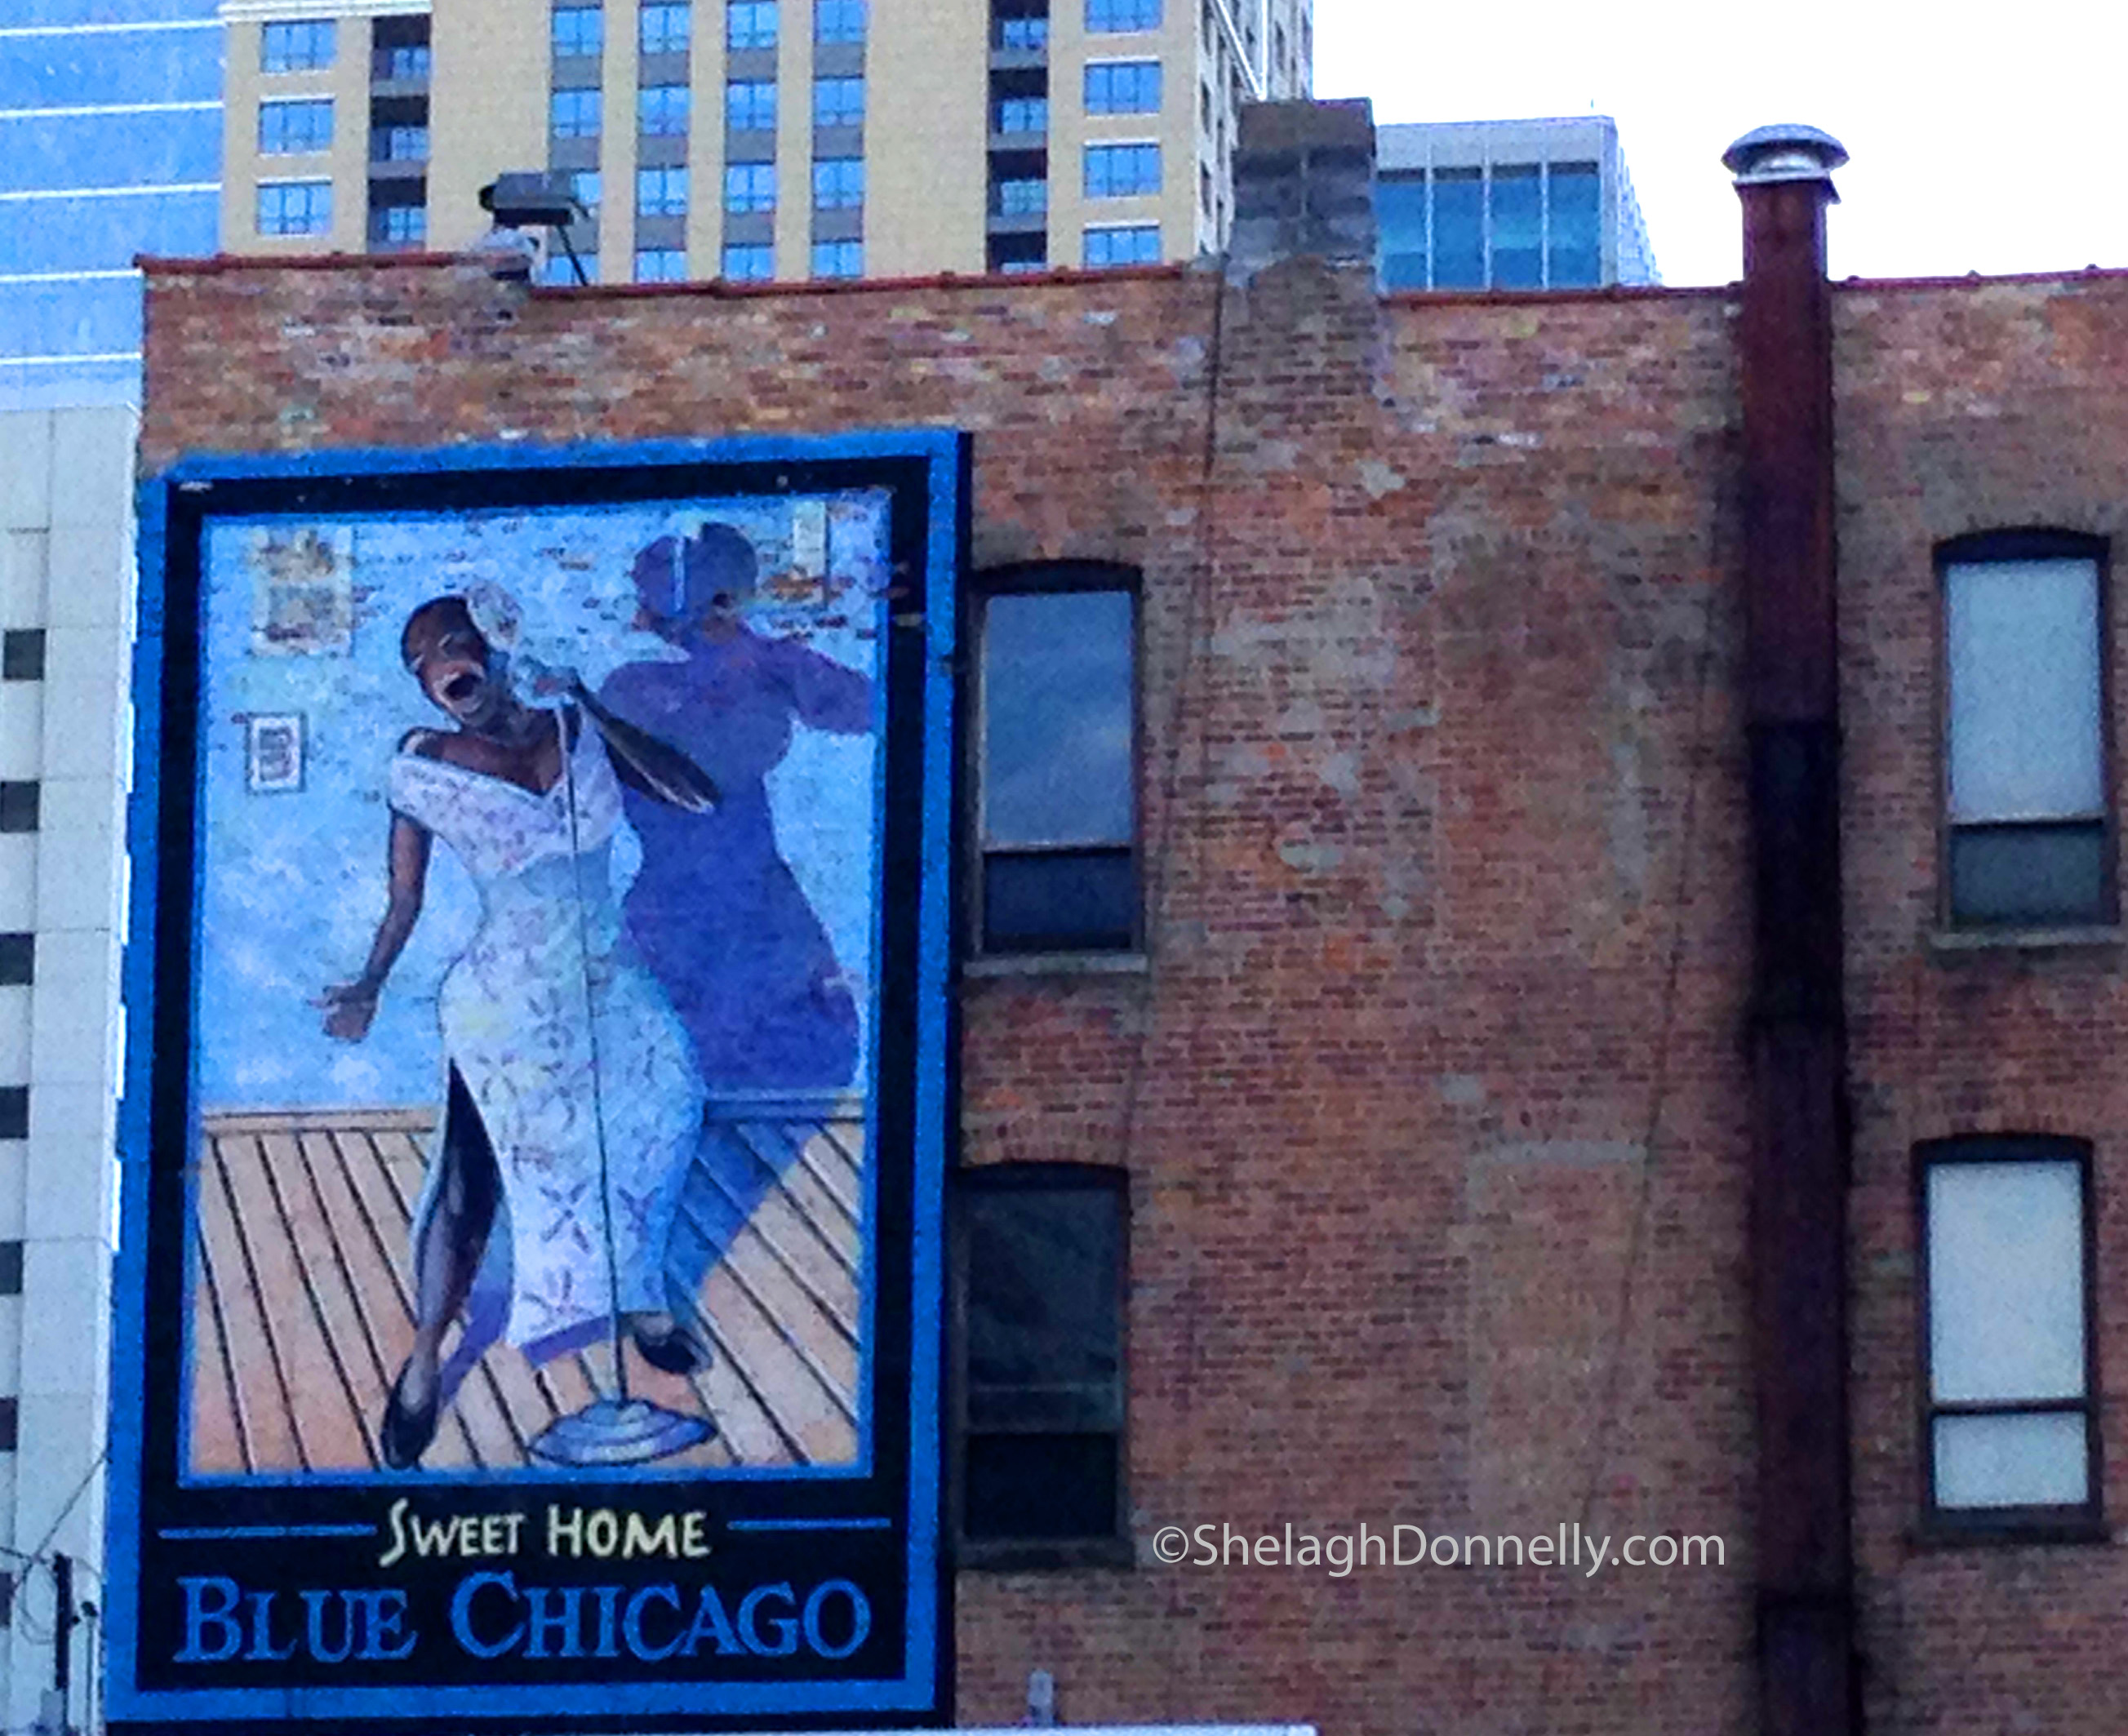 Blue Chicago 1205 Copyright Shelagh Donnelly